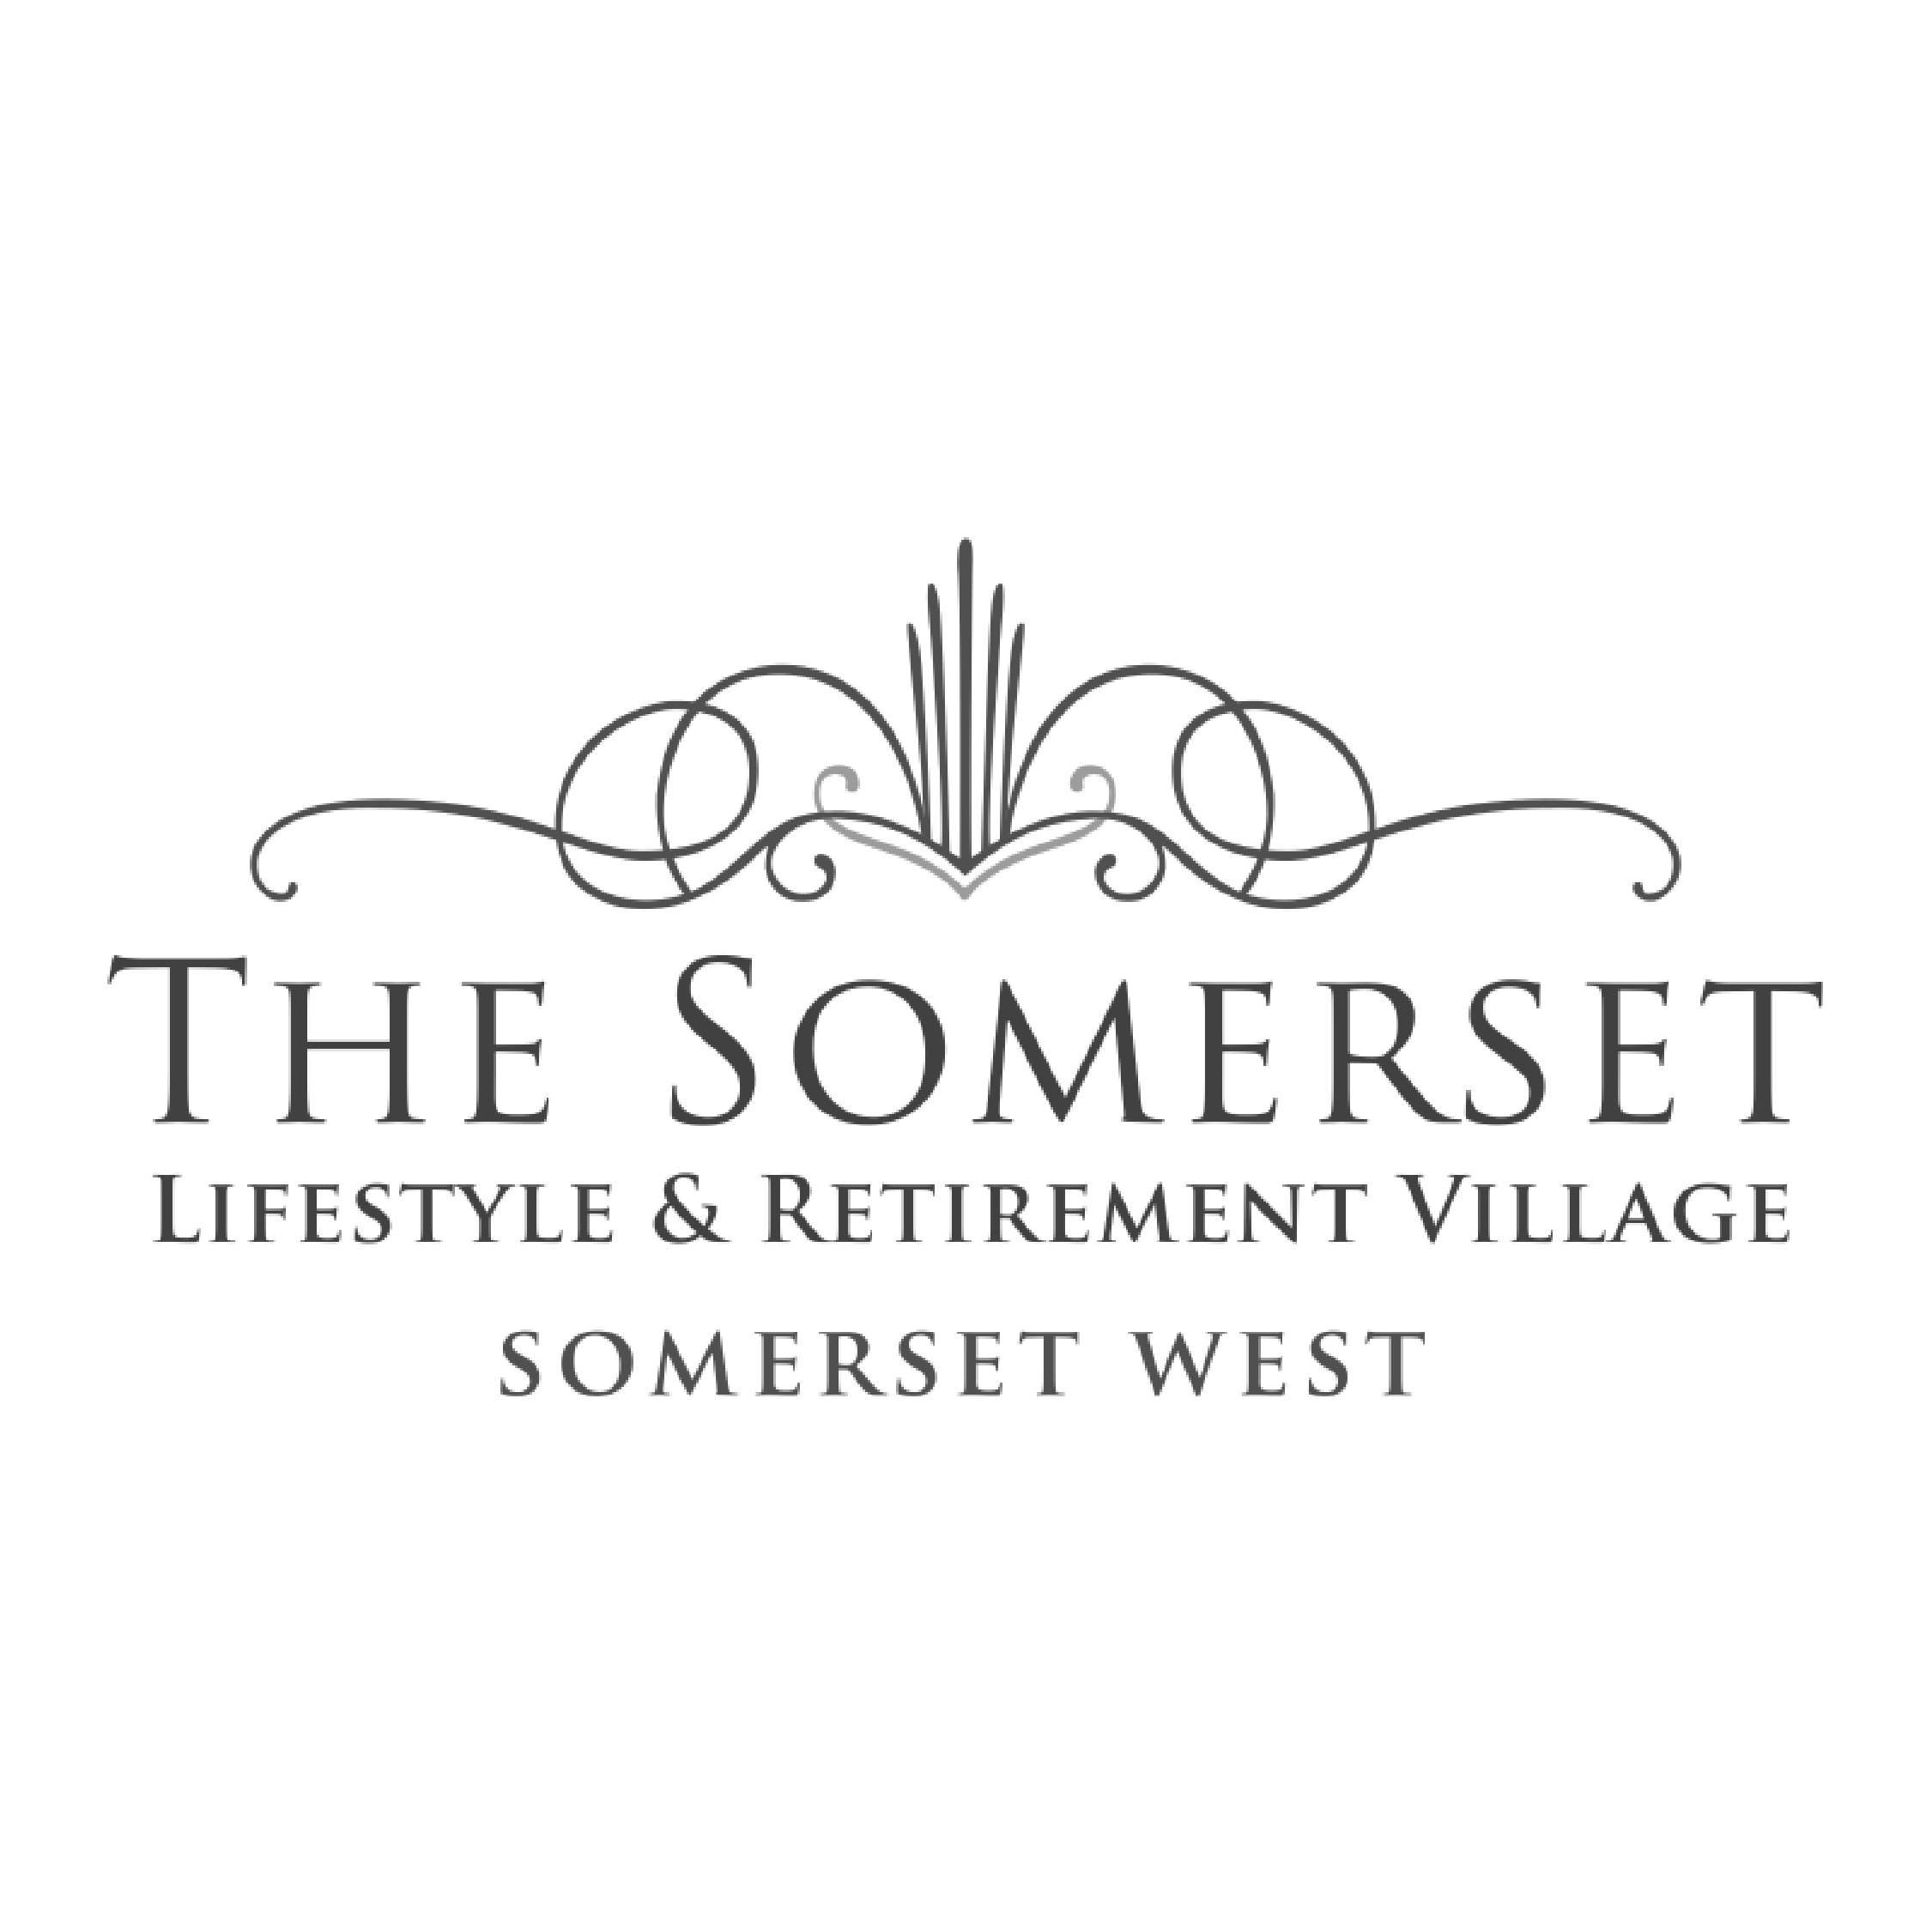 The Somerset Retirement Village greyscale